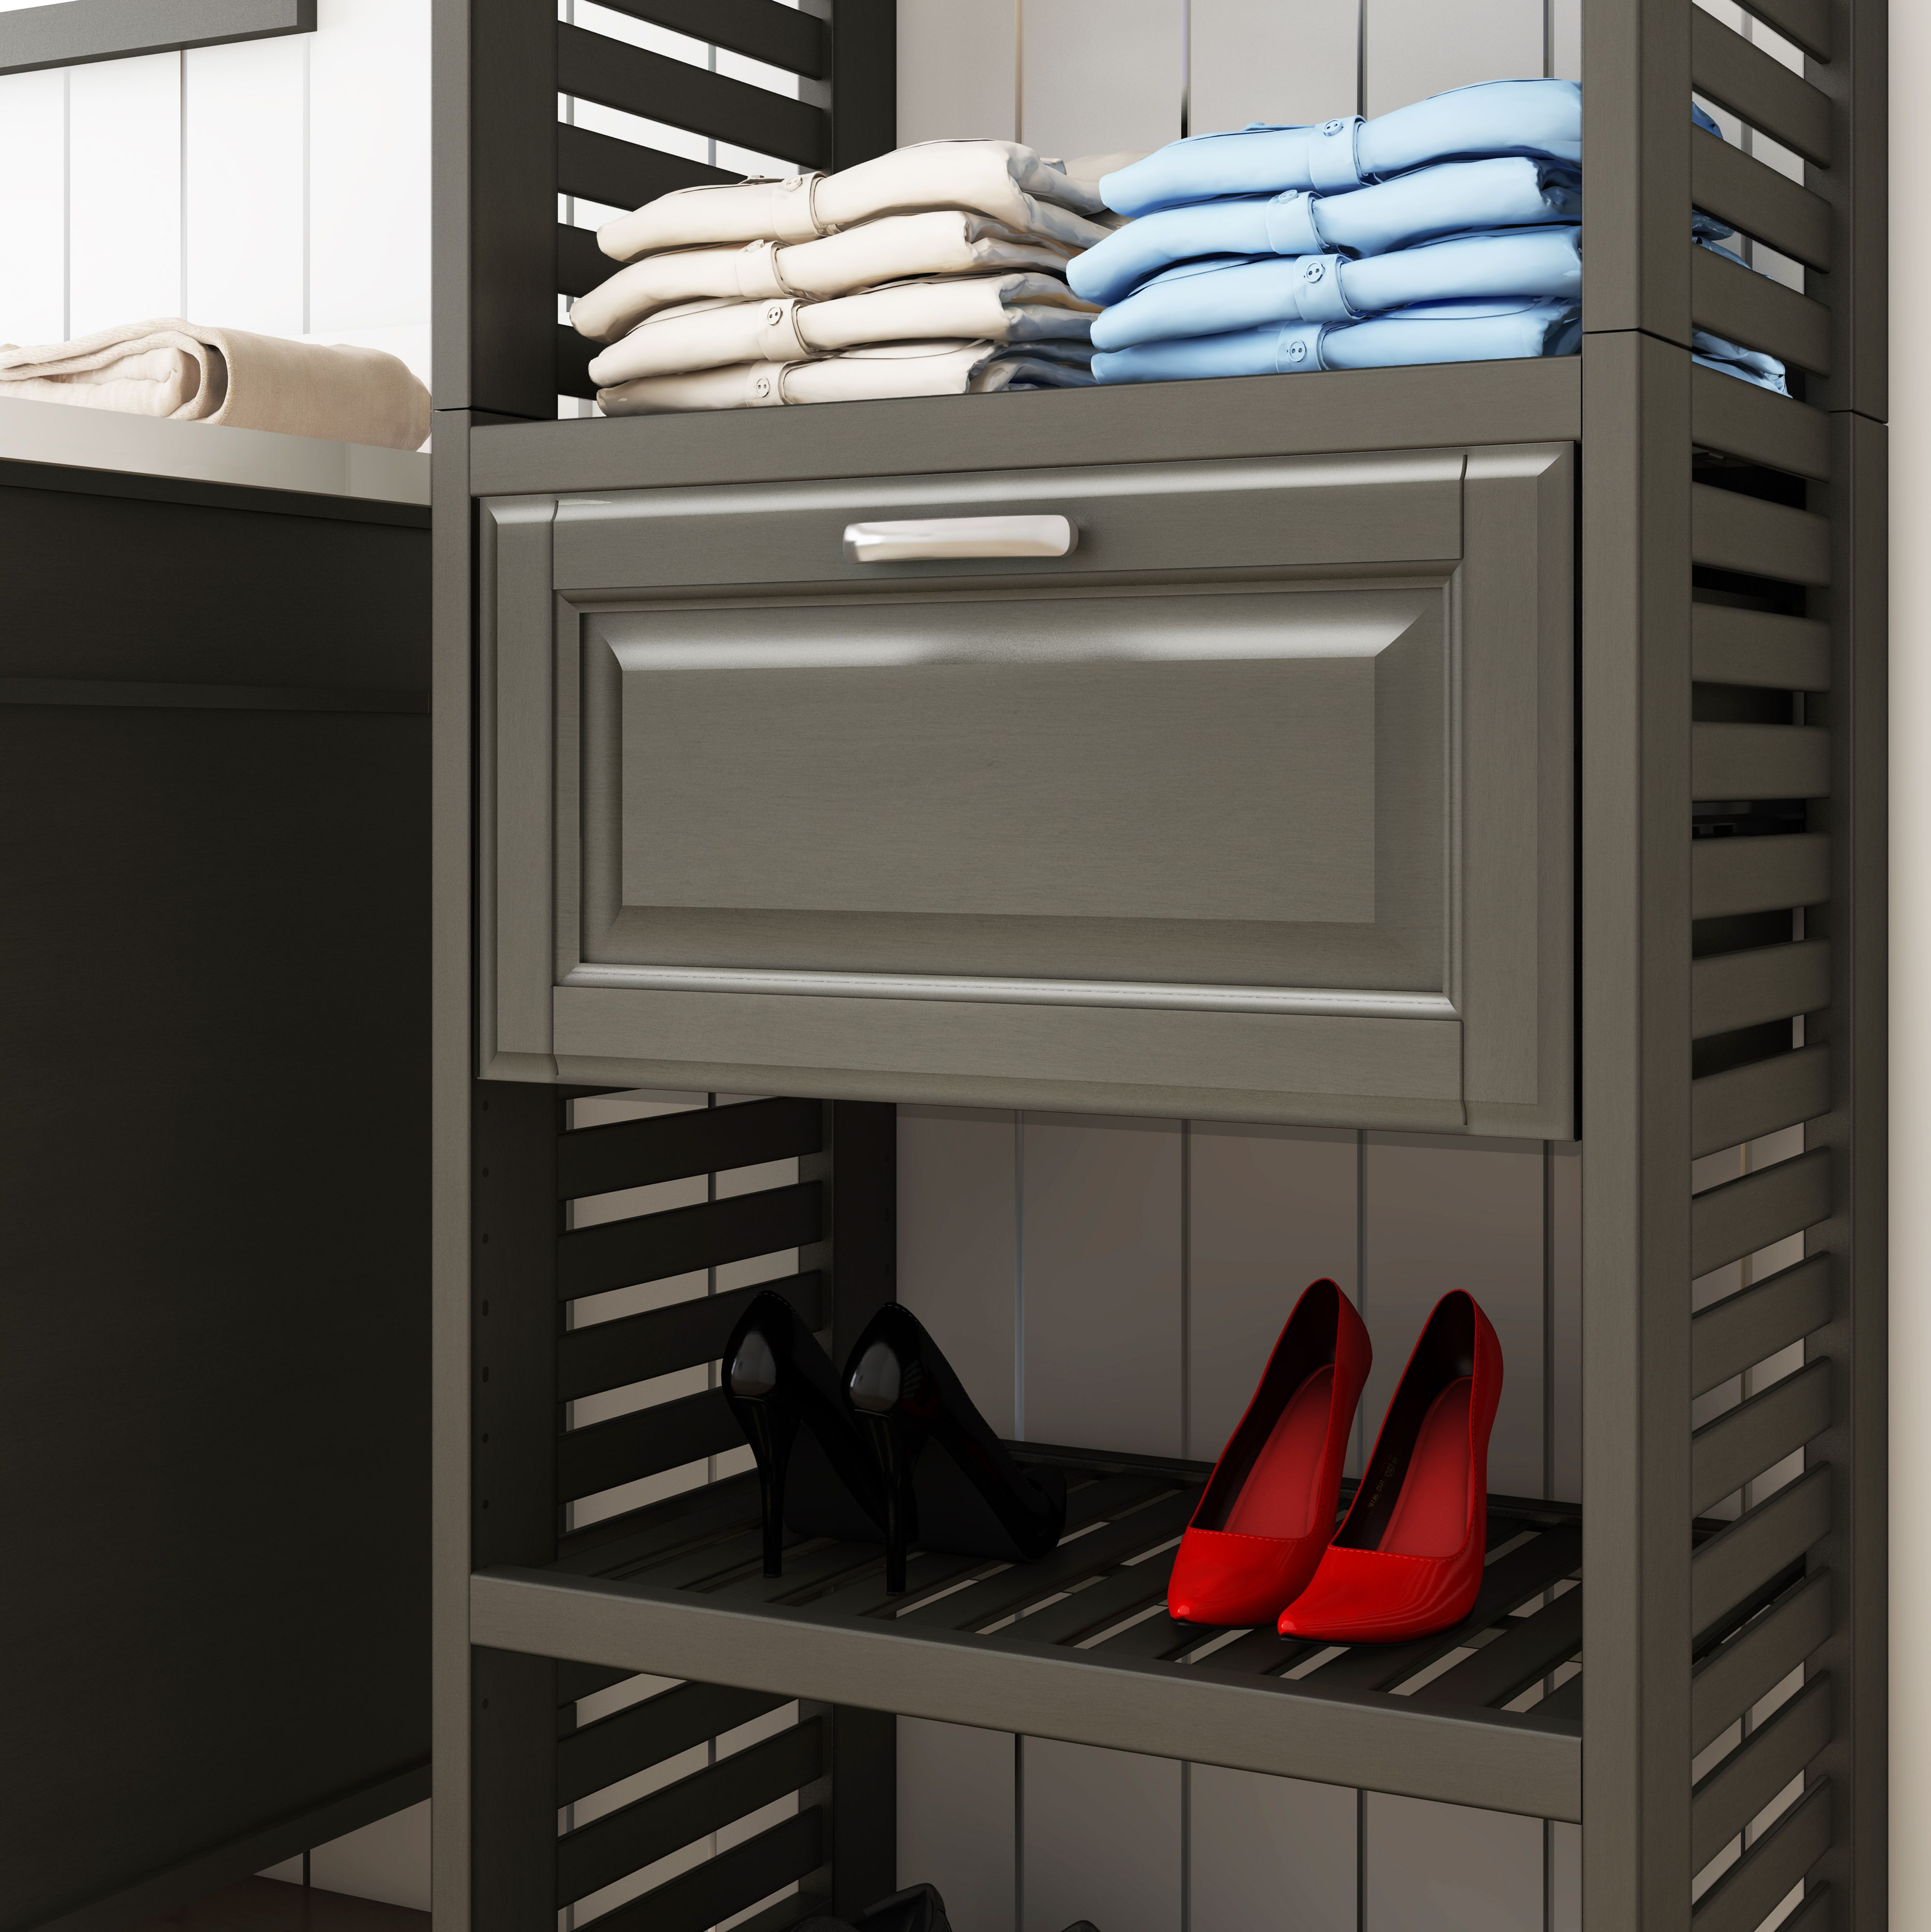 Allen + roth 8-ft W x 6 6-ft H Antique Gray Wood Closet Kit at Lowes com